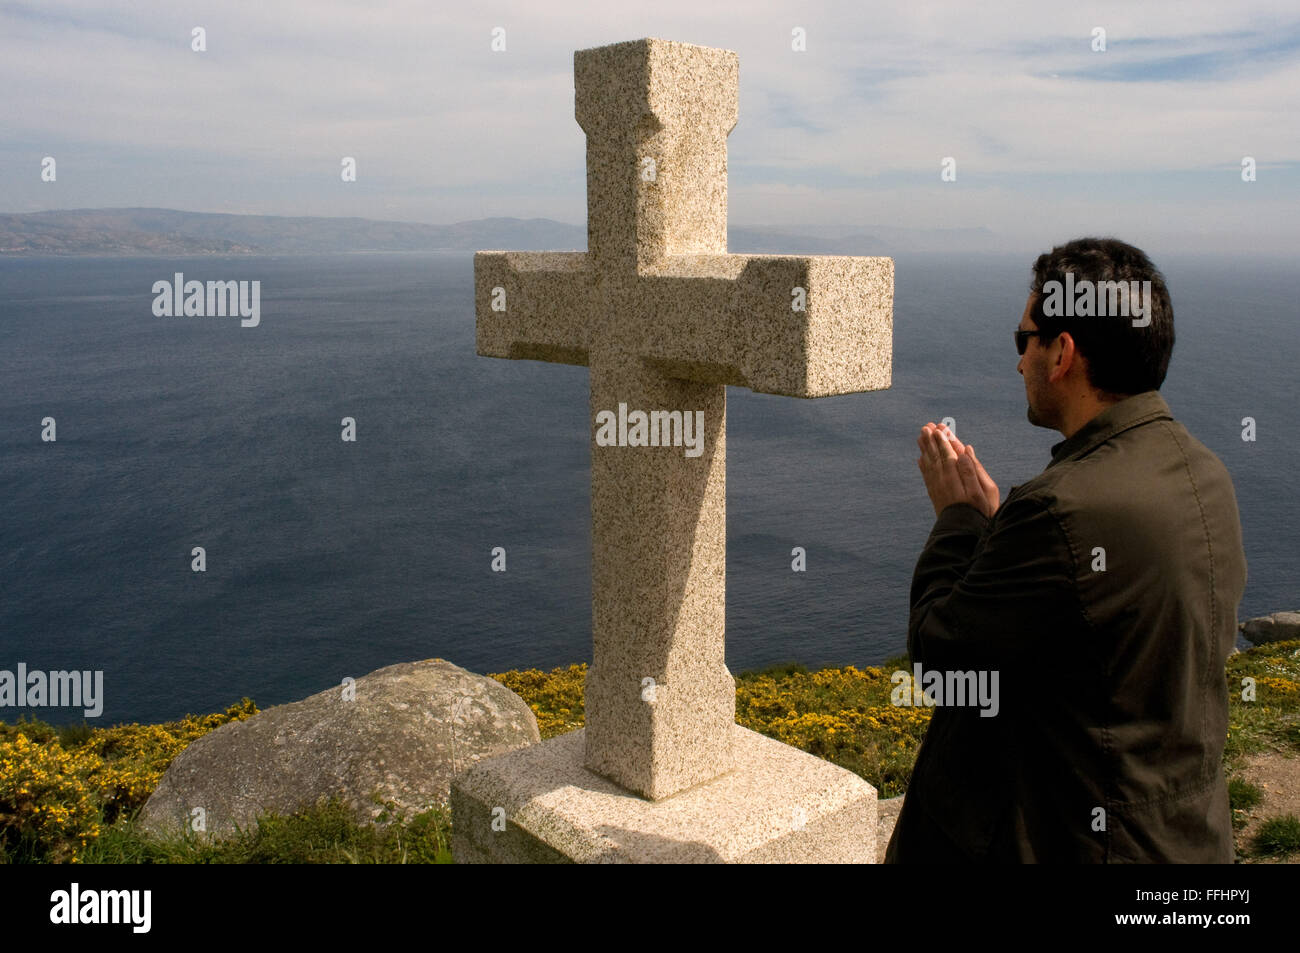 Way of St. James, Jacobean Route. Finis Terrae, Fisterre, Finisterre, A Coruña. Pilgrim pray at stone cross - Stock Image